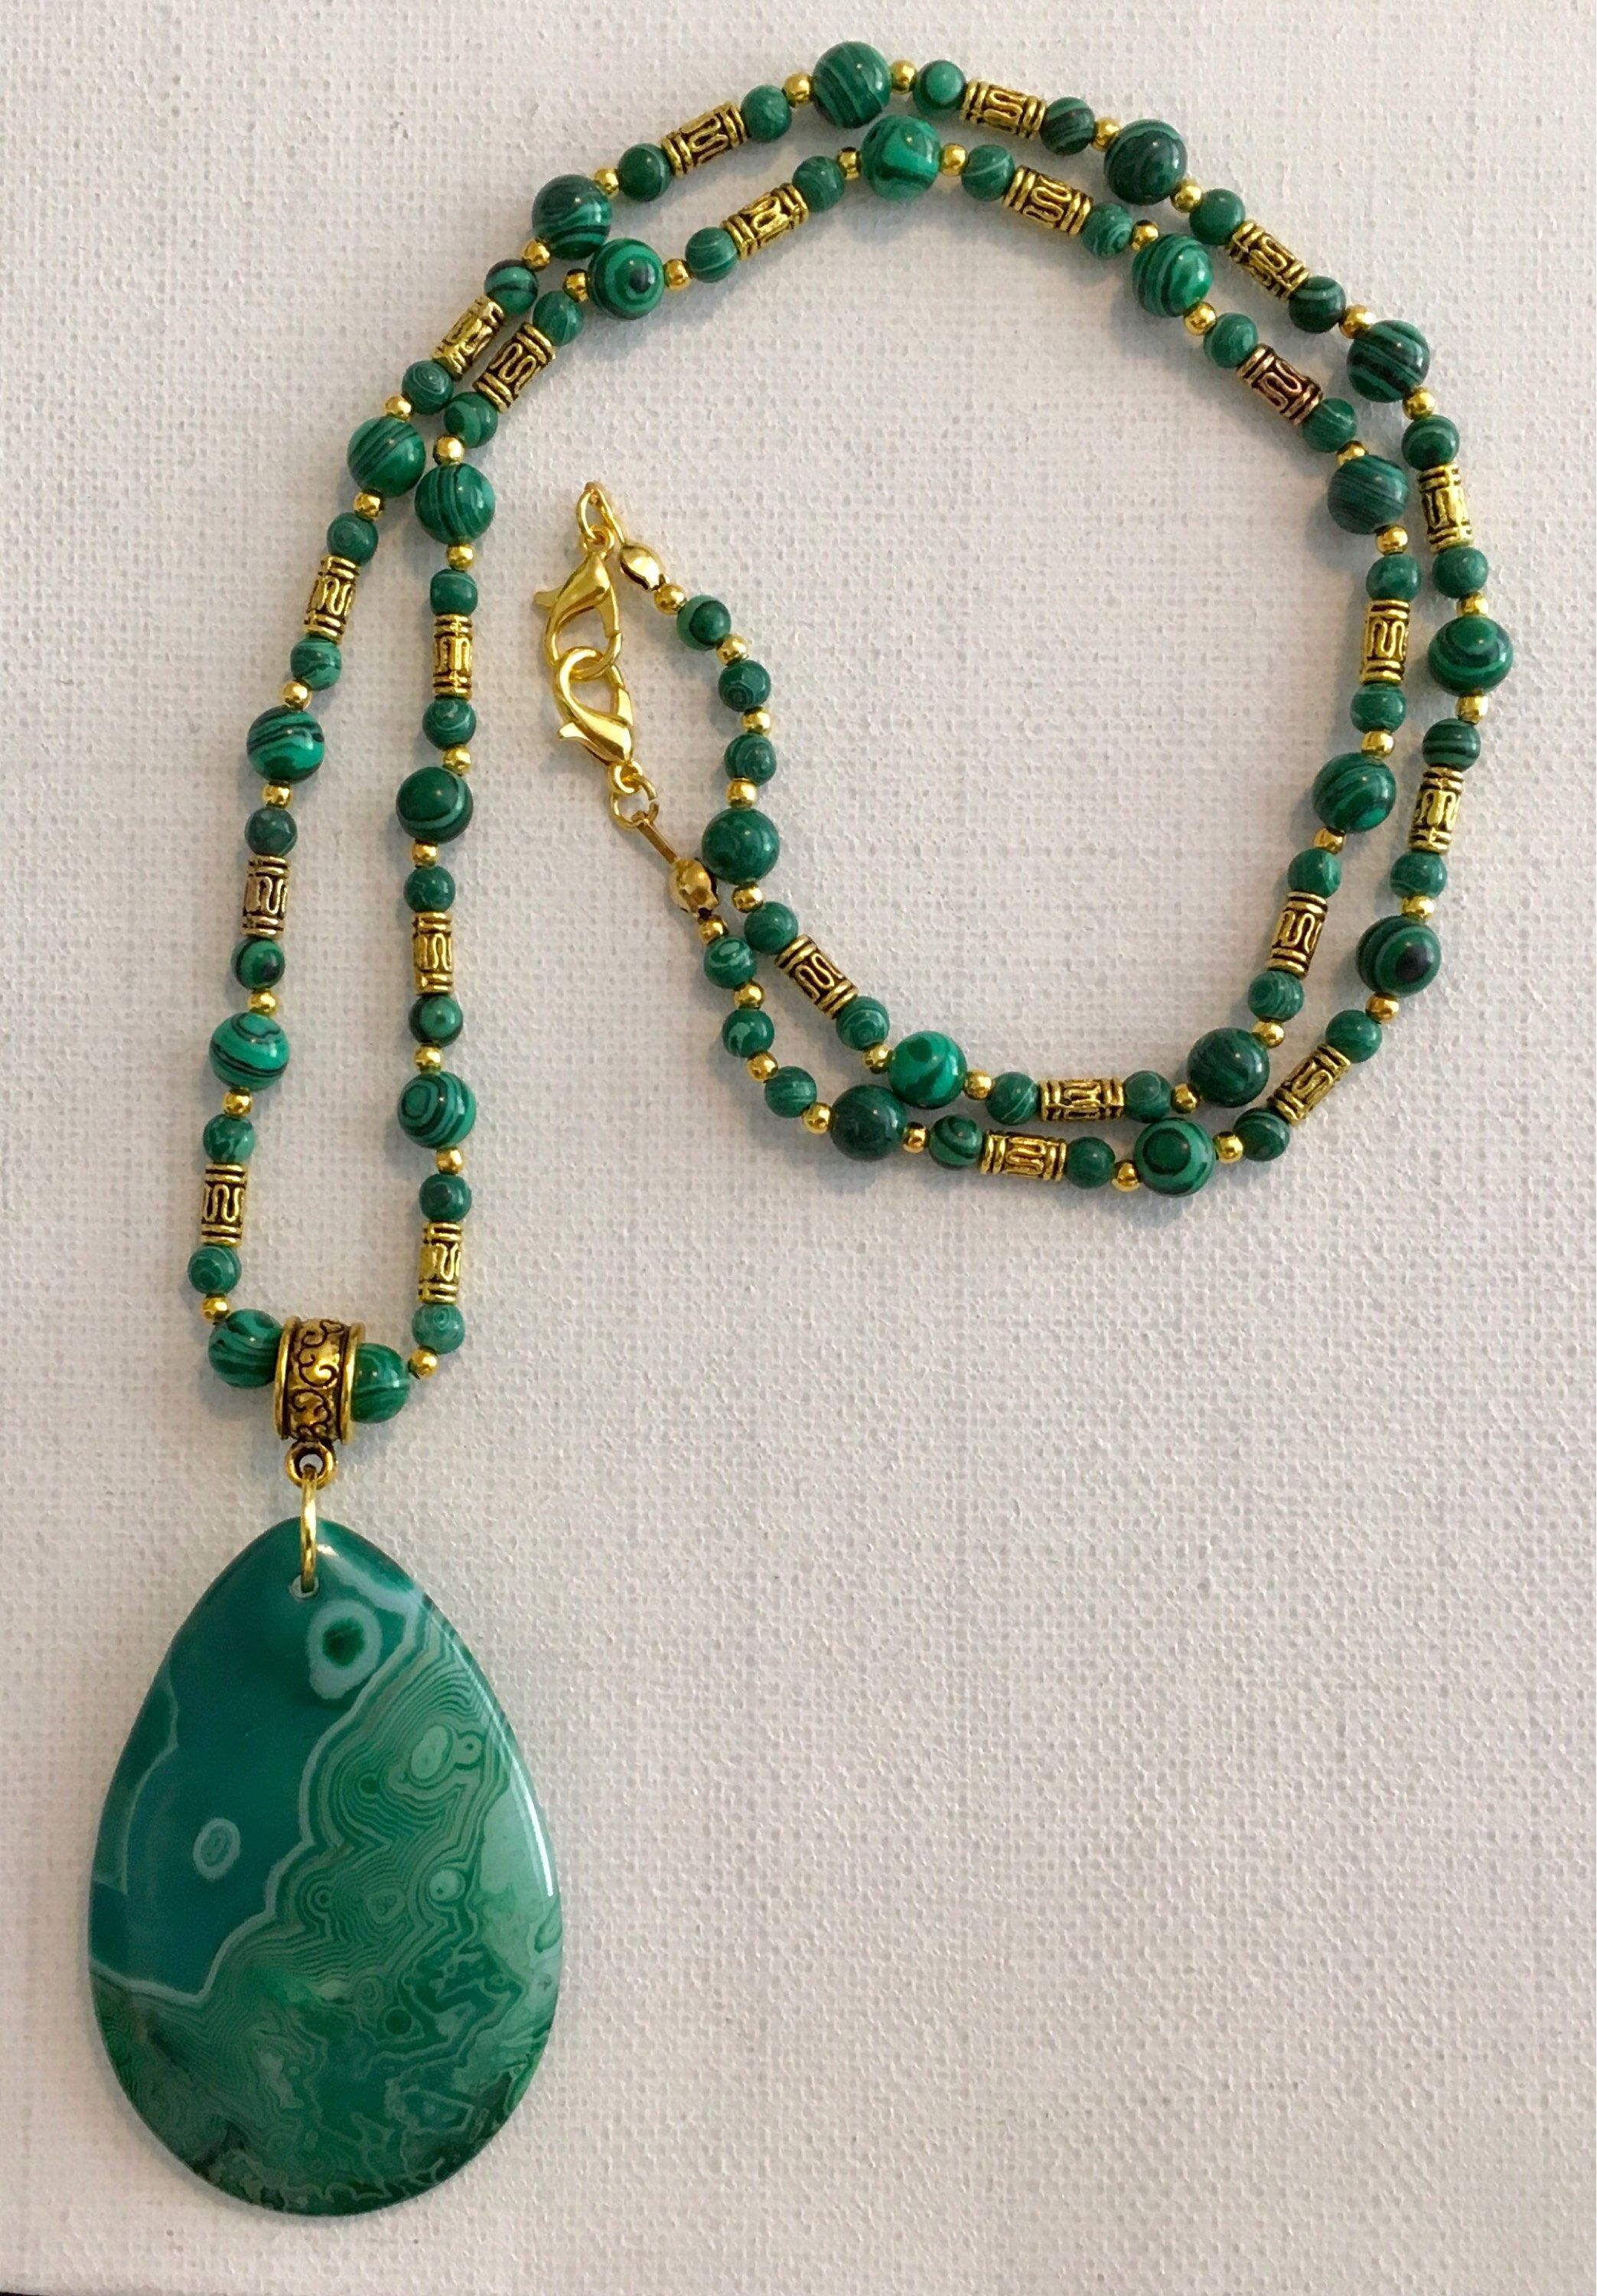 Green Agate Pendant on a hand knotted gemstone bead chain